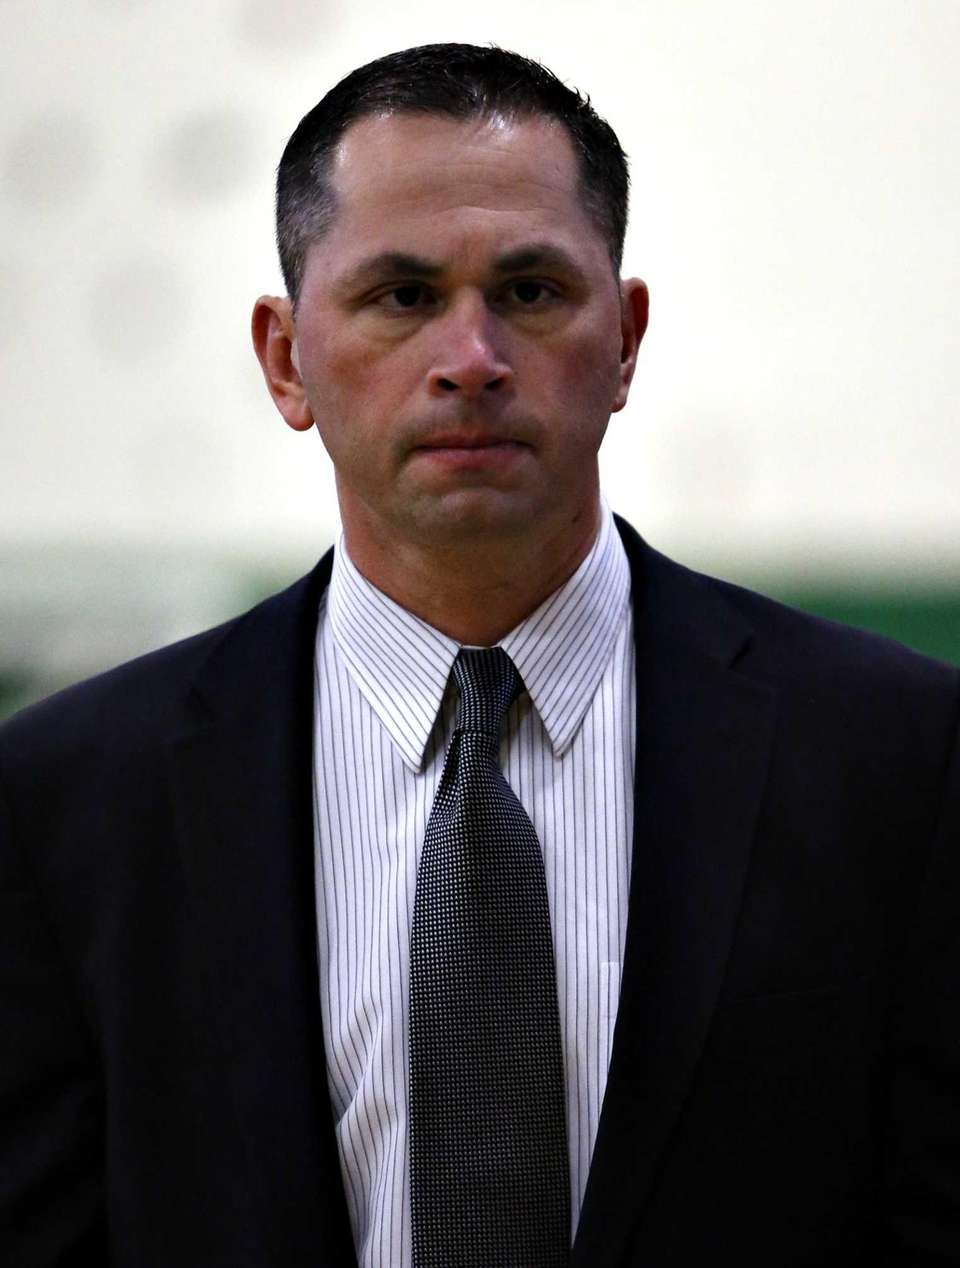 Brentwood boys varsity basketball head coach Anthony Jimenez